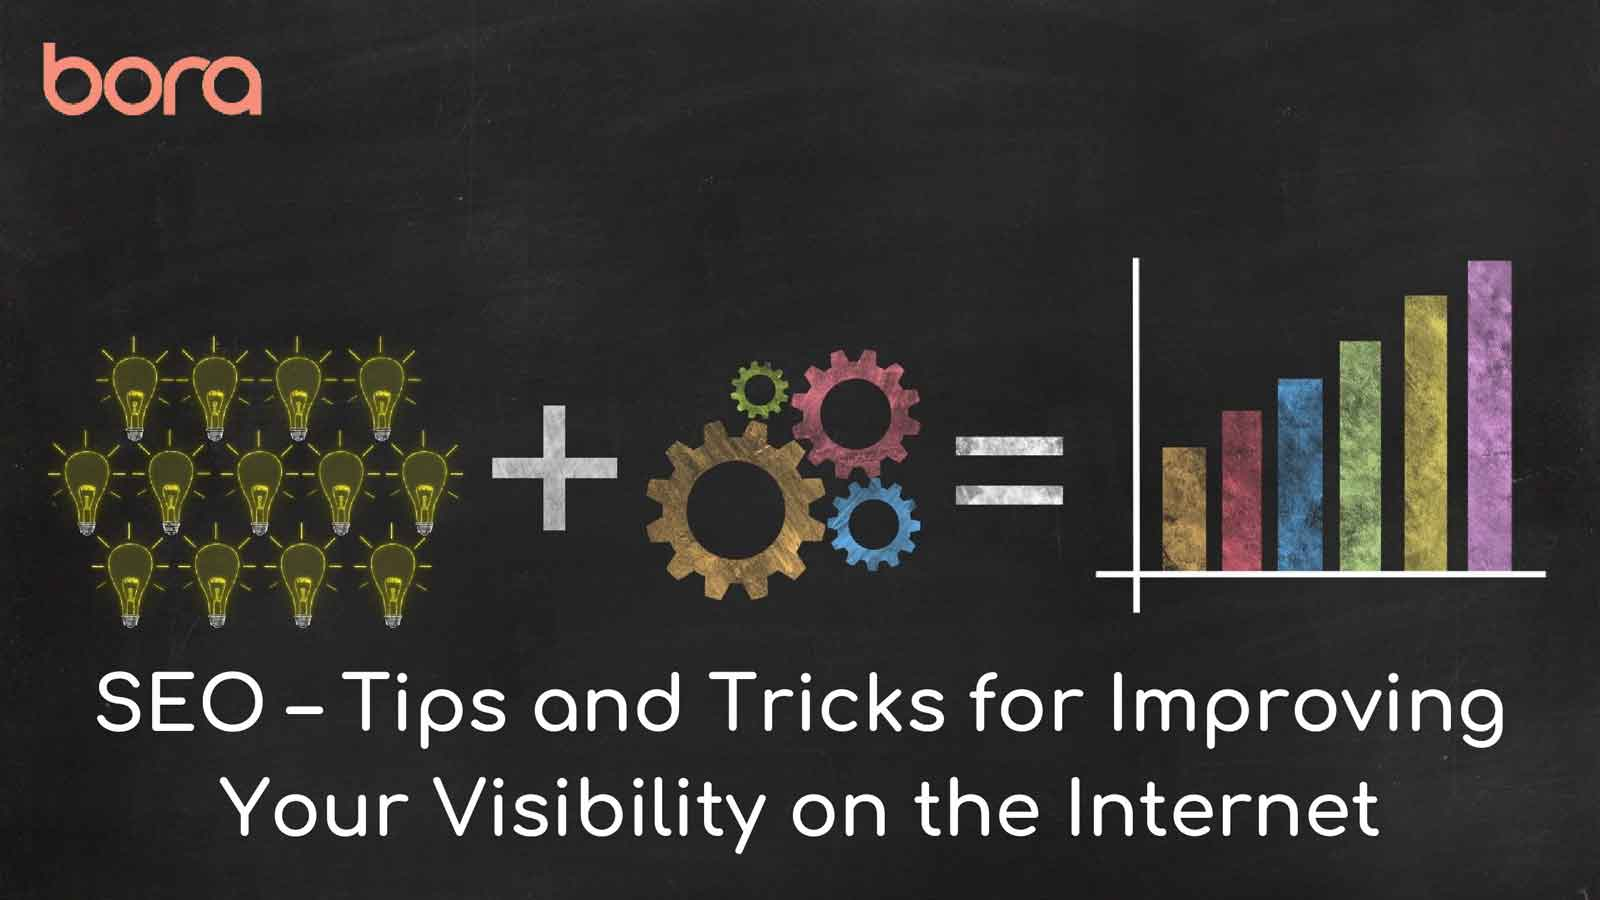 SEO – Tips and Tricks for Improving Your Visibility on the Internet